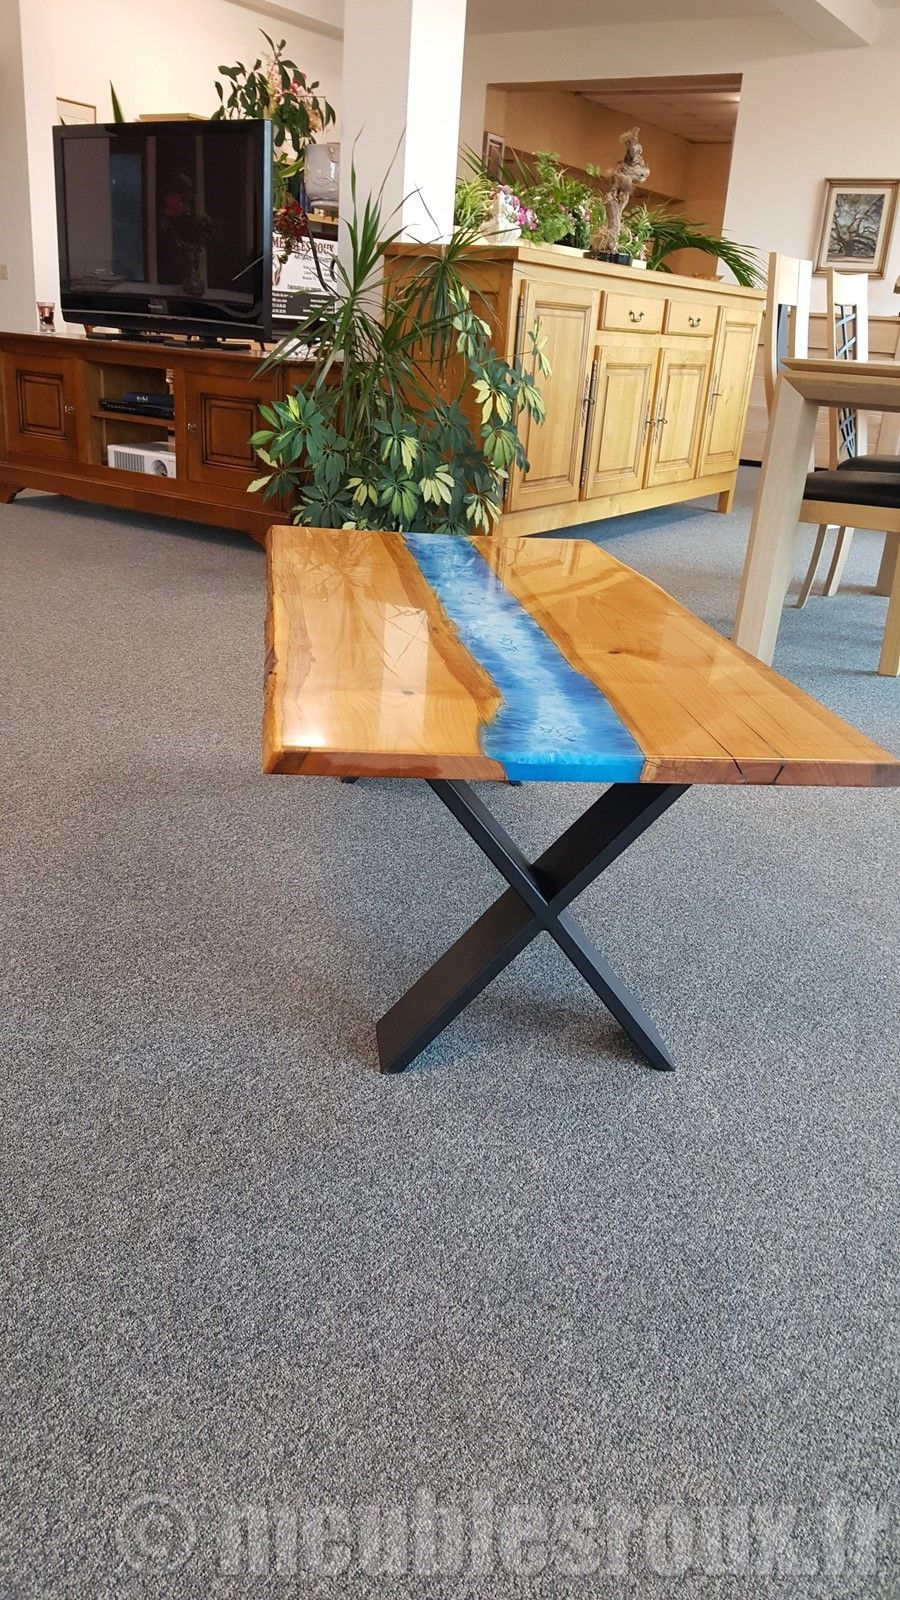 Table Basse En Merisier Et Resine Epoxy Table Basse Design Table Basse En Merisier Table De Salon Design